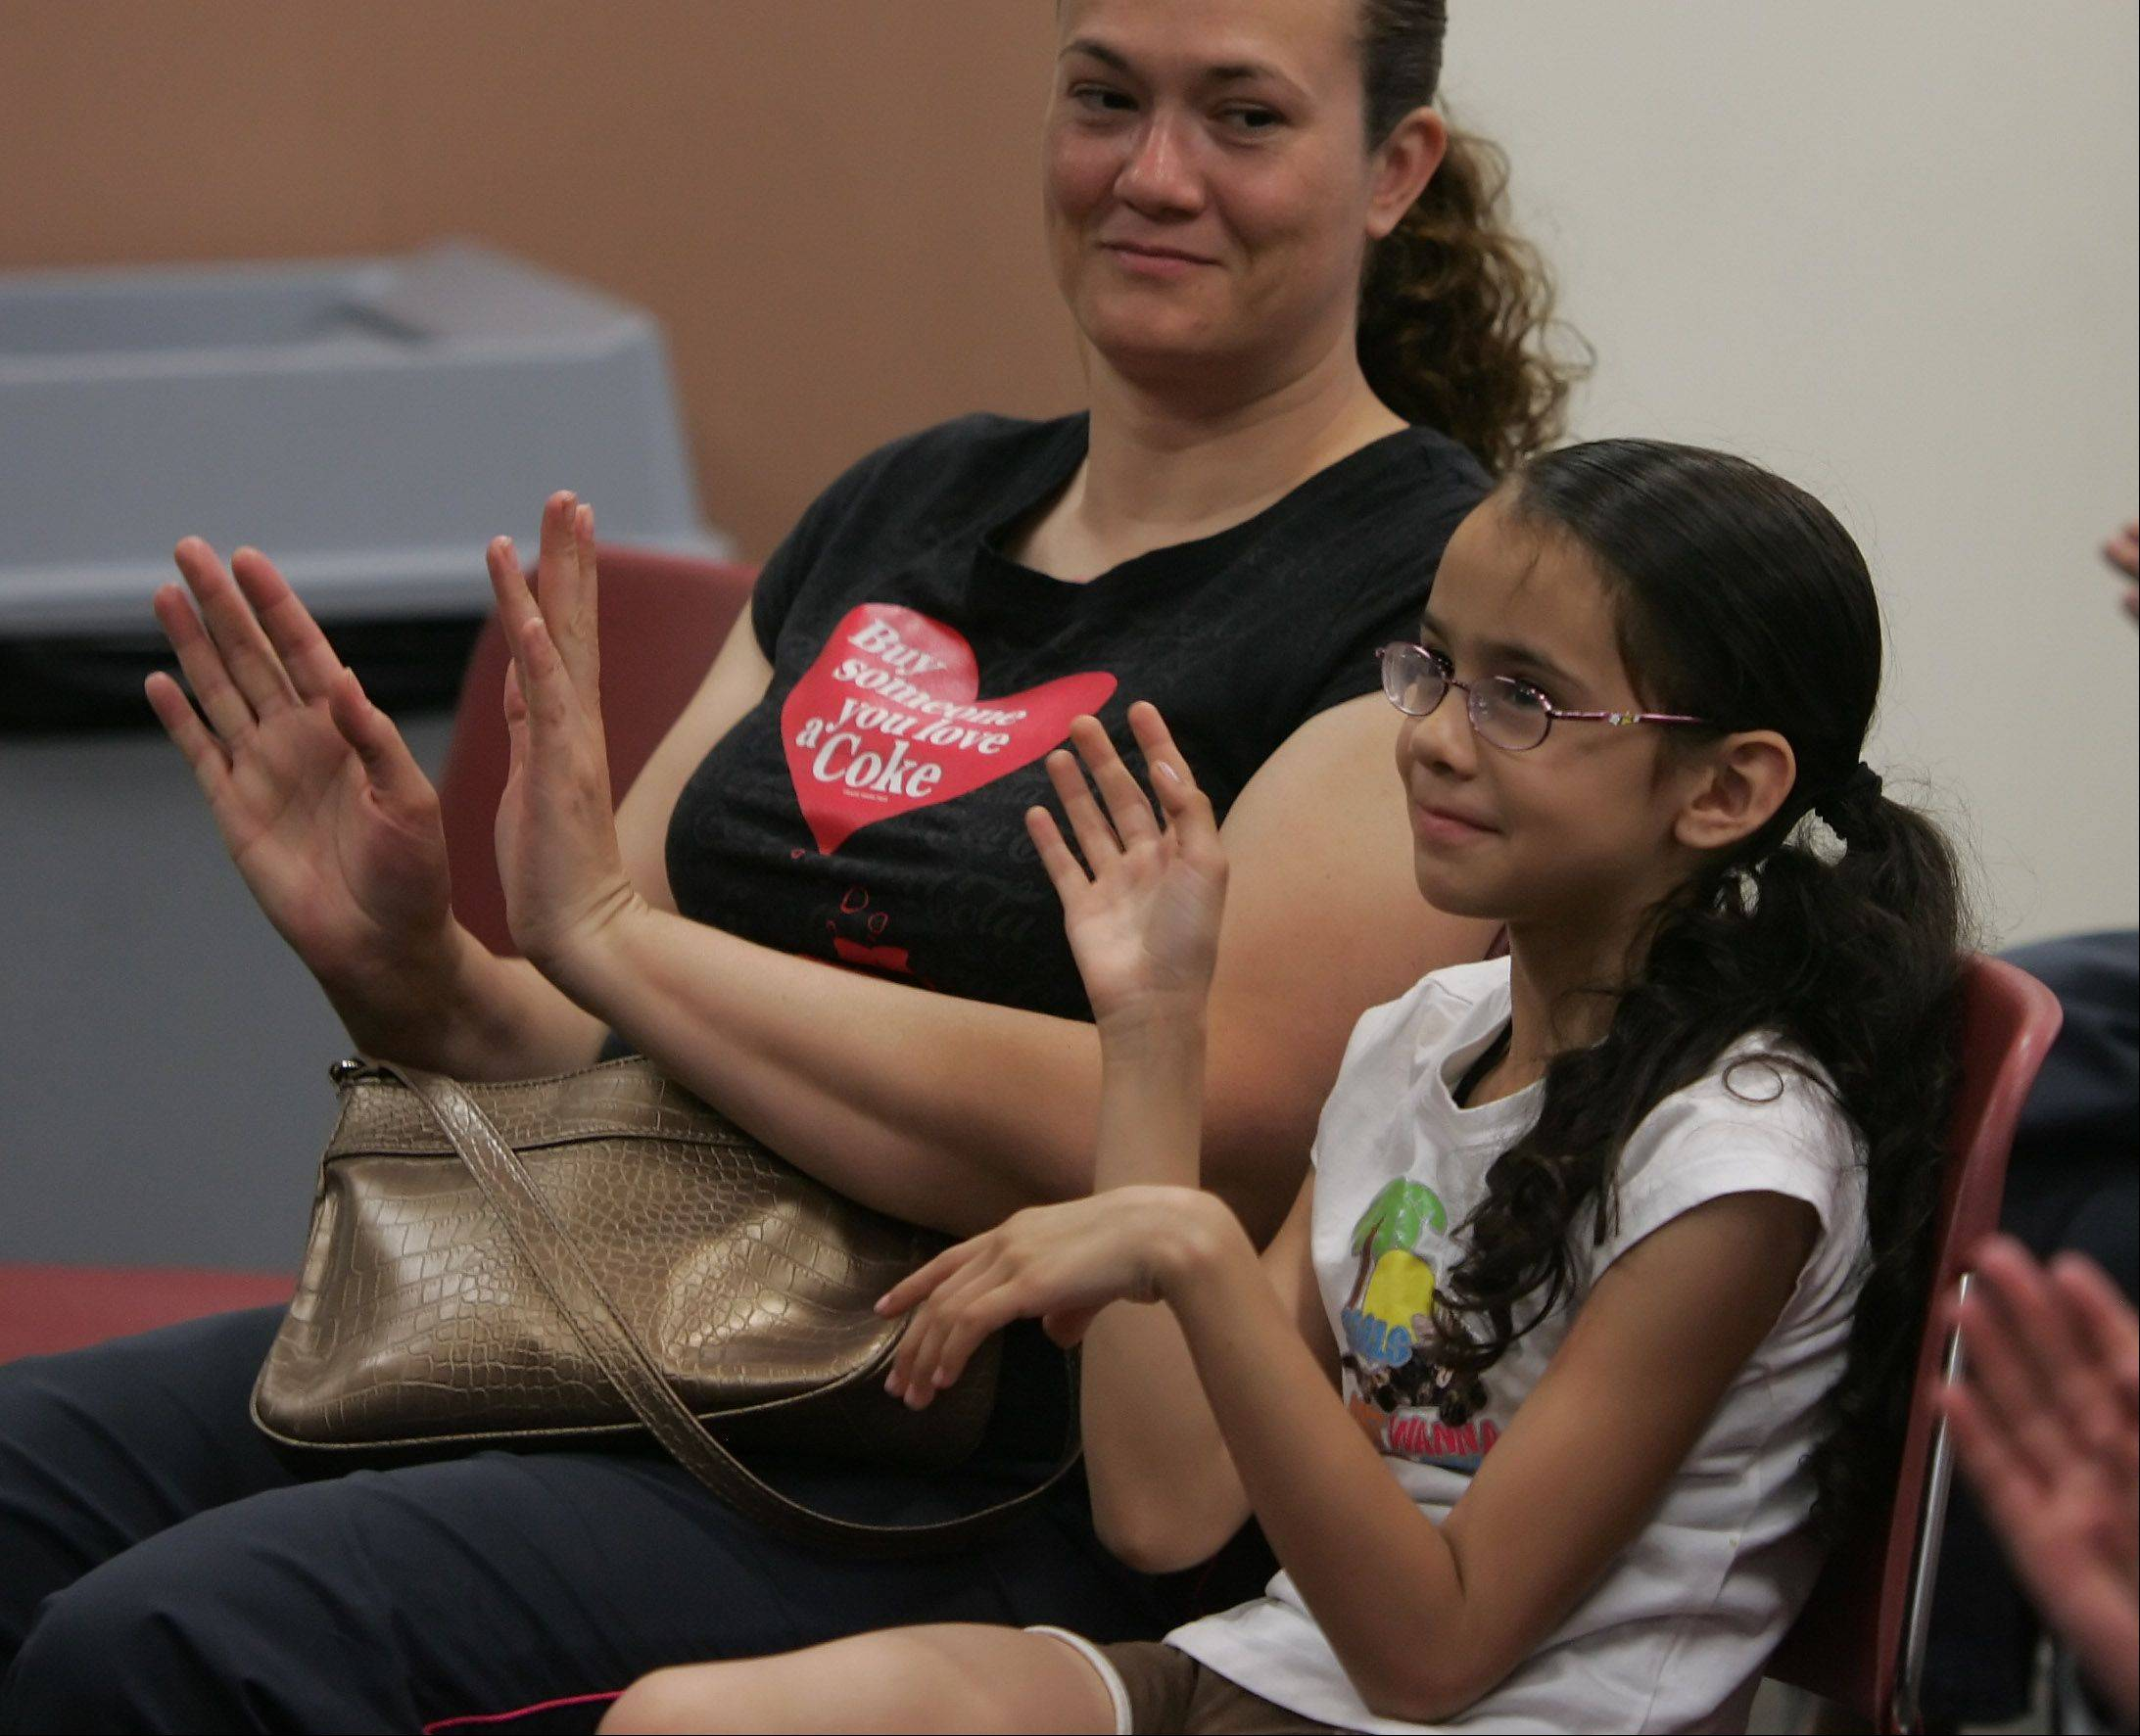 Dania Ortiz, 8, of Round Lake Heights, and her mother, Alma, clap their hands to a song by Officer Ollie during the Puppet Crime Prevention program Monday by the Round Lake Police Department at the Round Lake Area Public Library. The puppets entertained and informed kids about stranger danger, getting lost, and the importance of knowing your address.